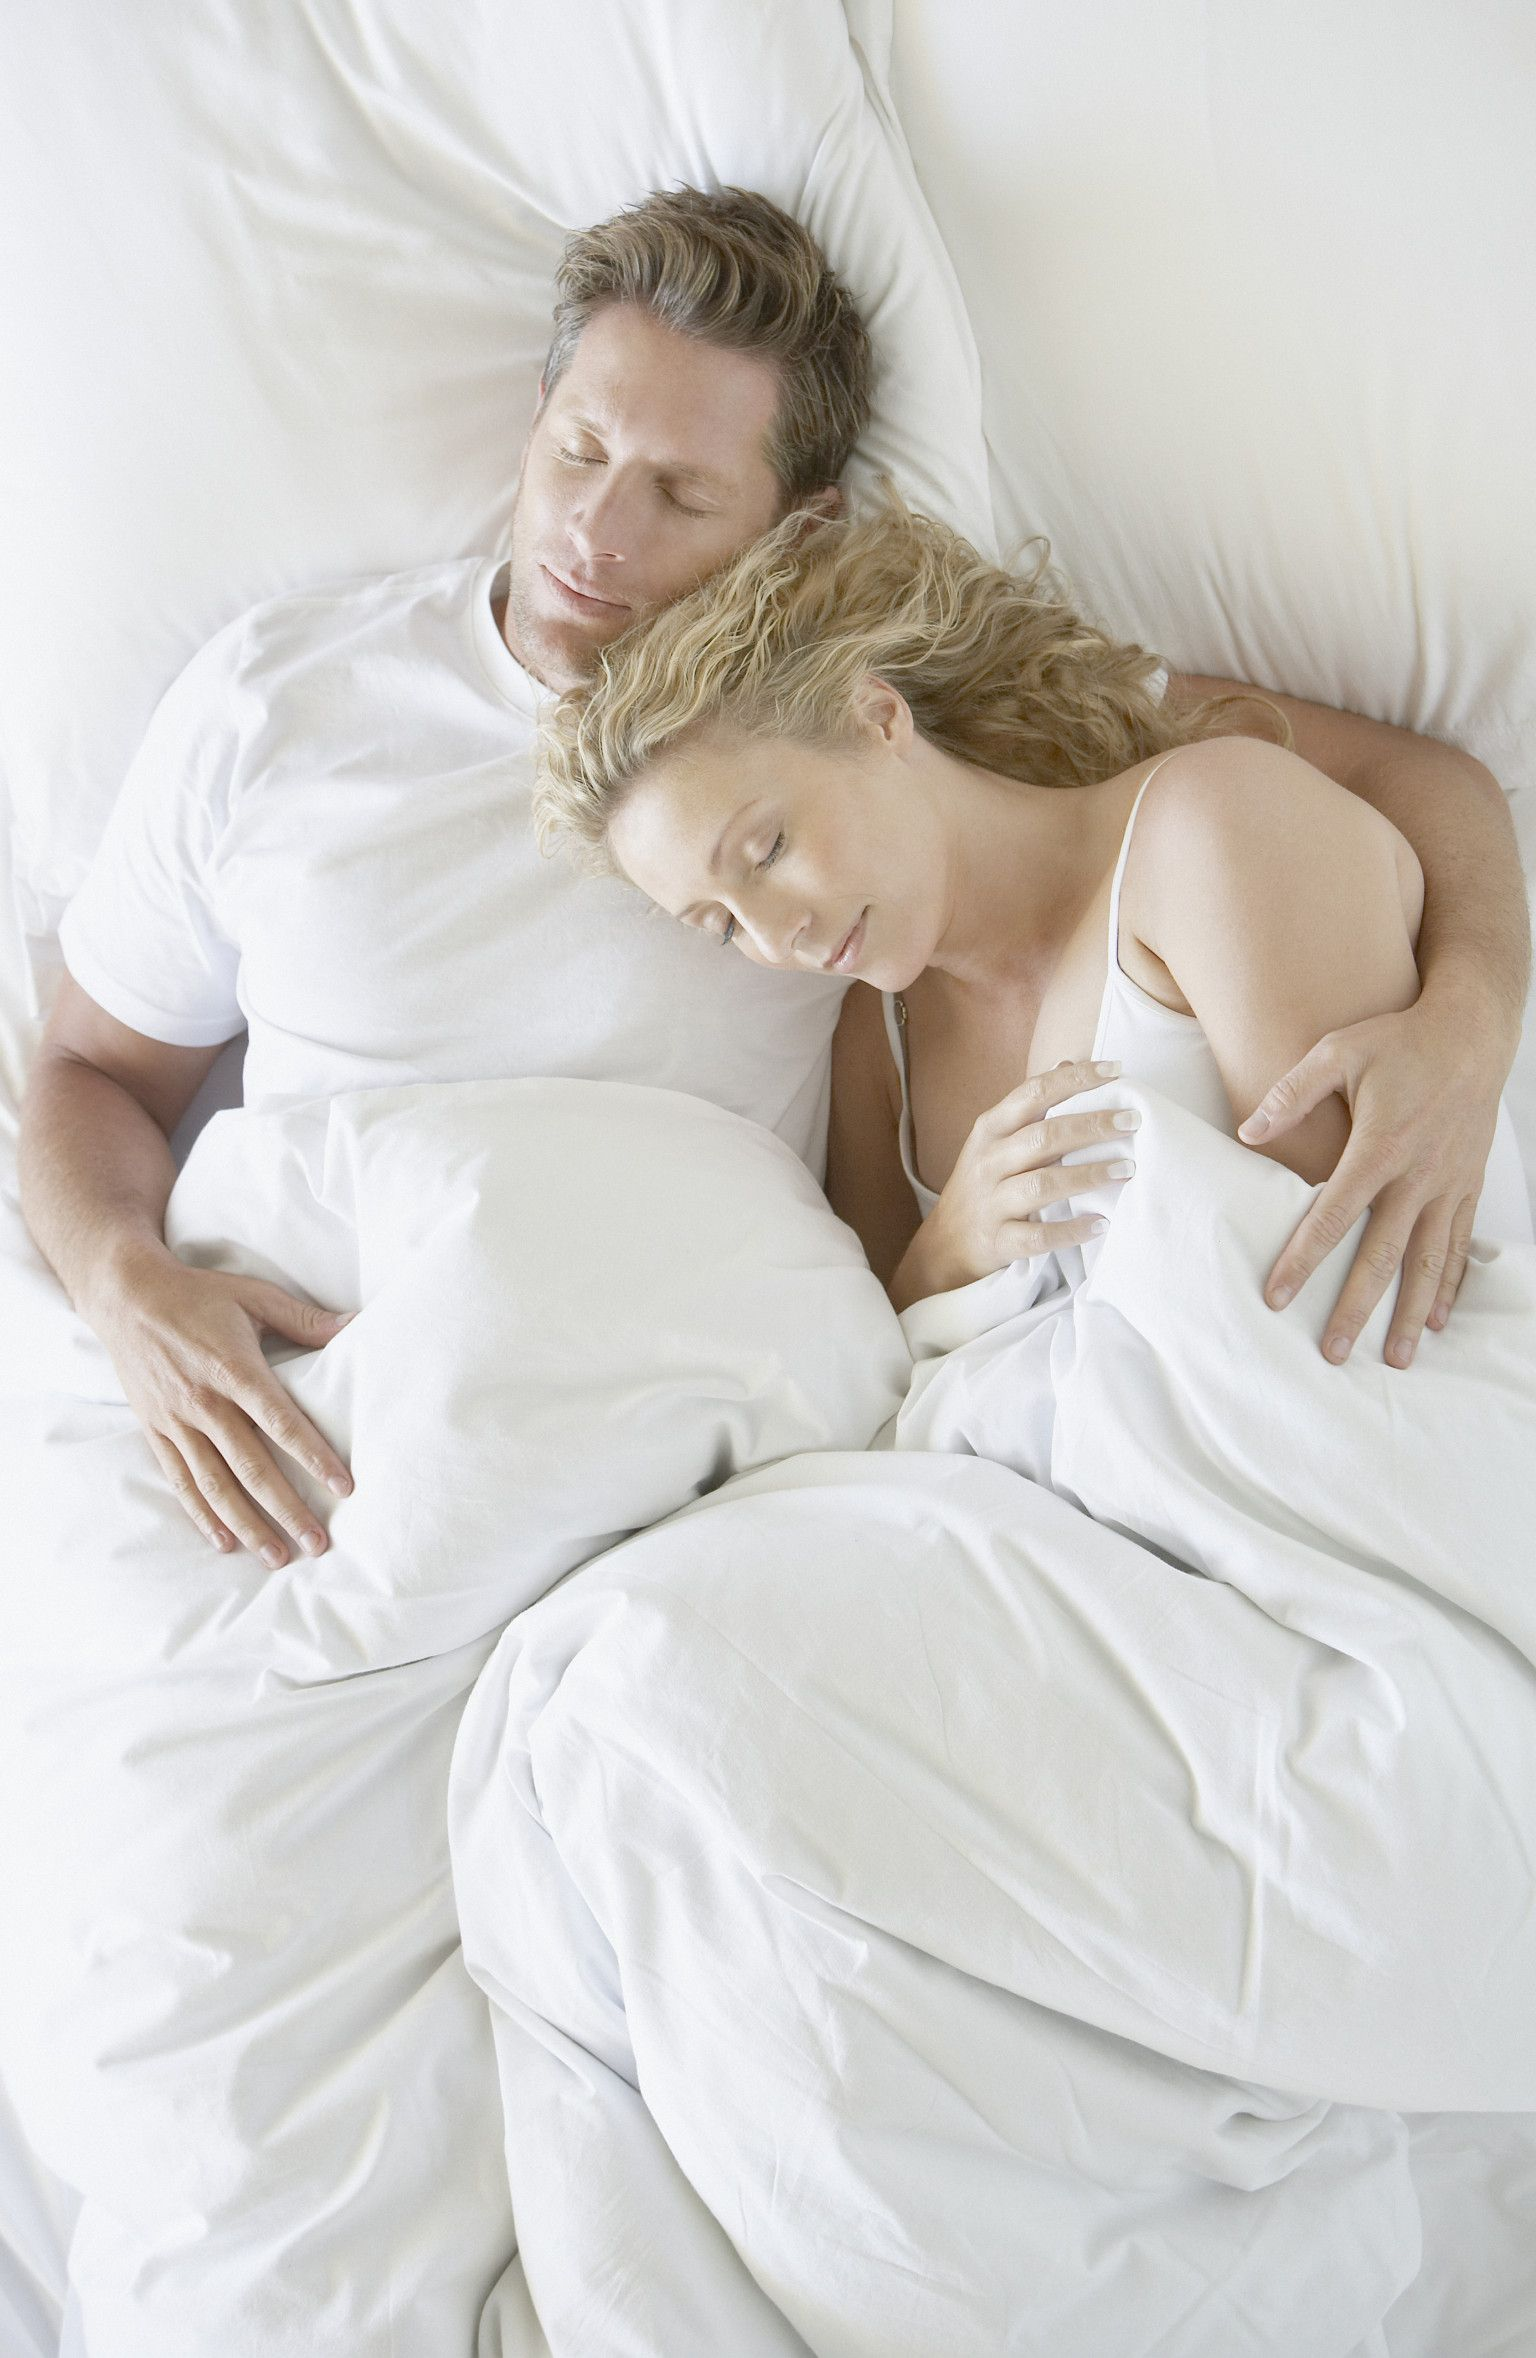 Marriage in trouble when sex life decreases